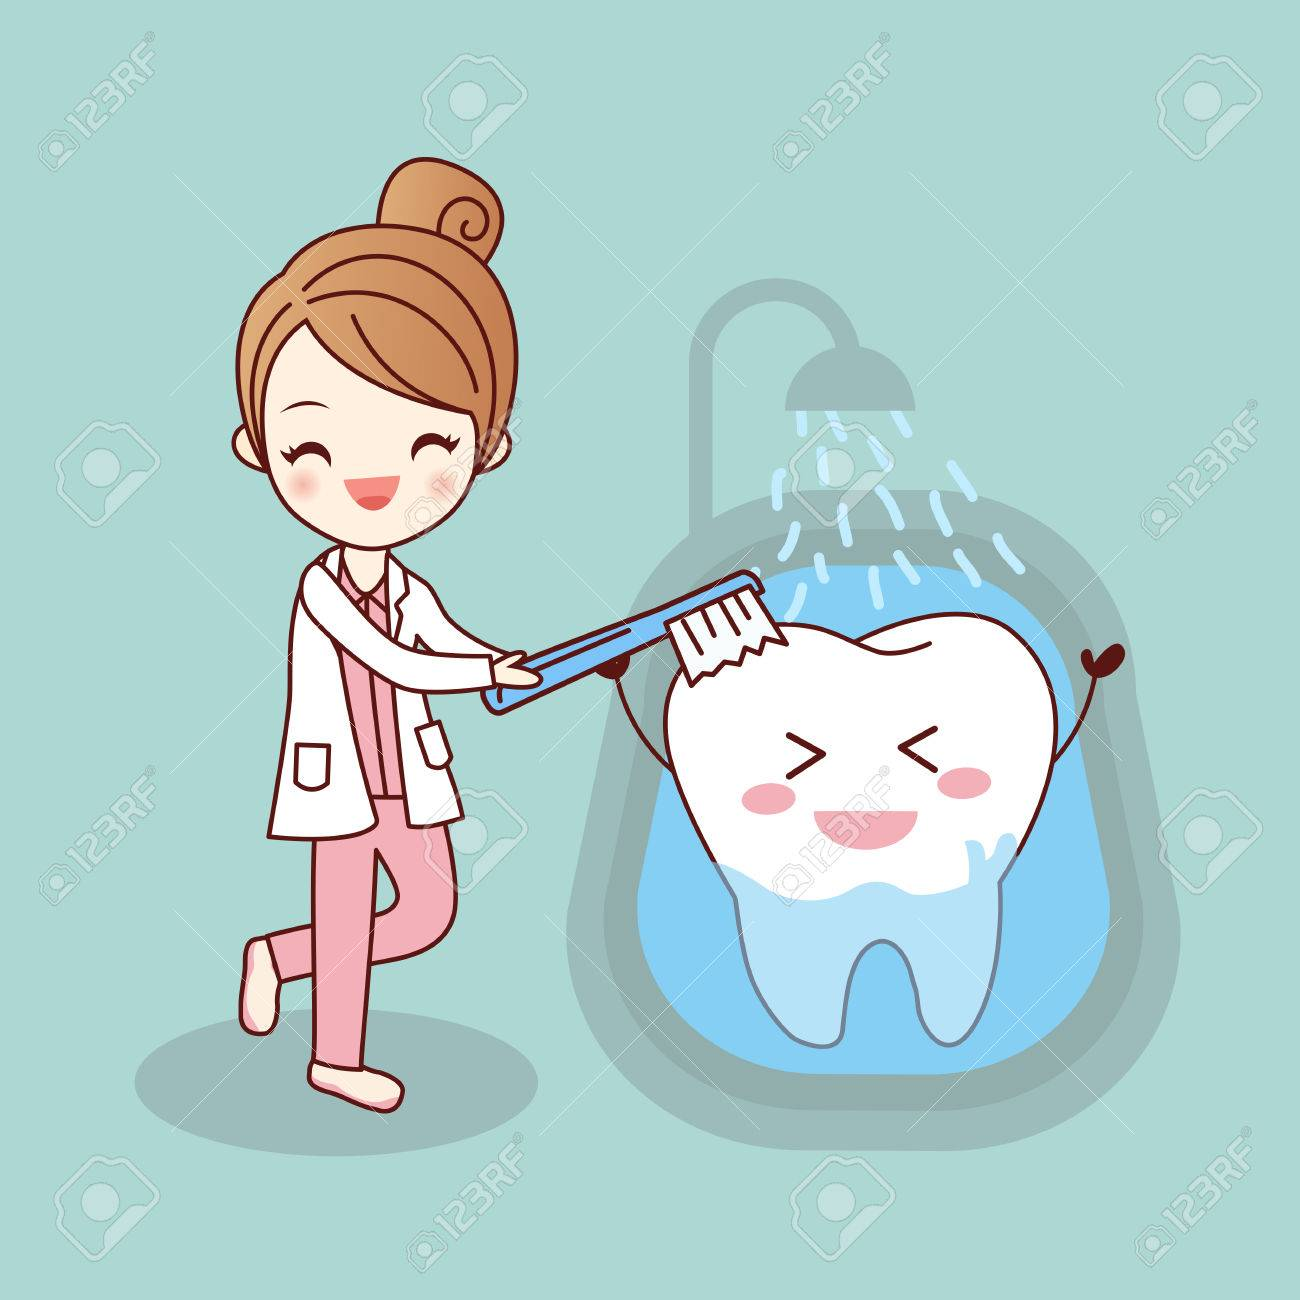 Beauty Cartoon Dentist Is Brush Tooth Great For Health Dental Royalty Free Cliparts Vectors And Stock Illustration Image 70305735